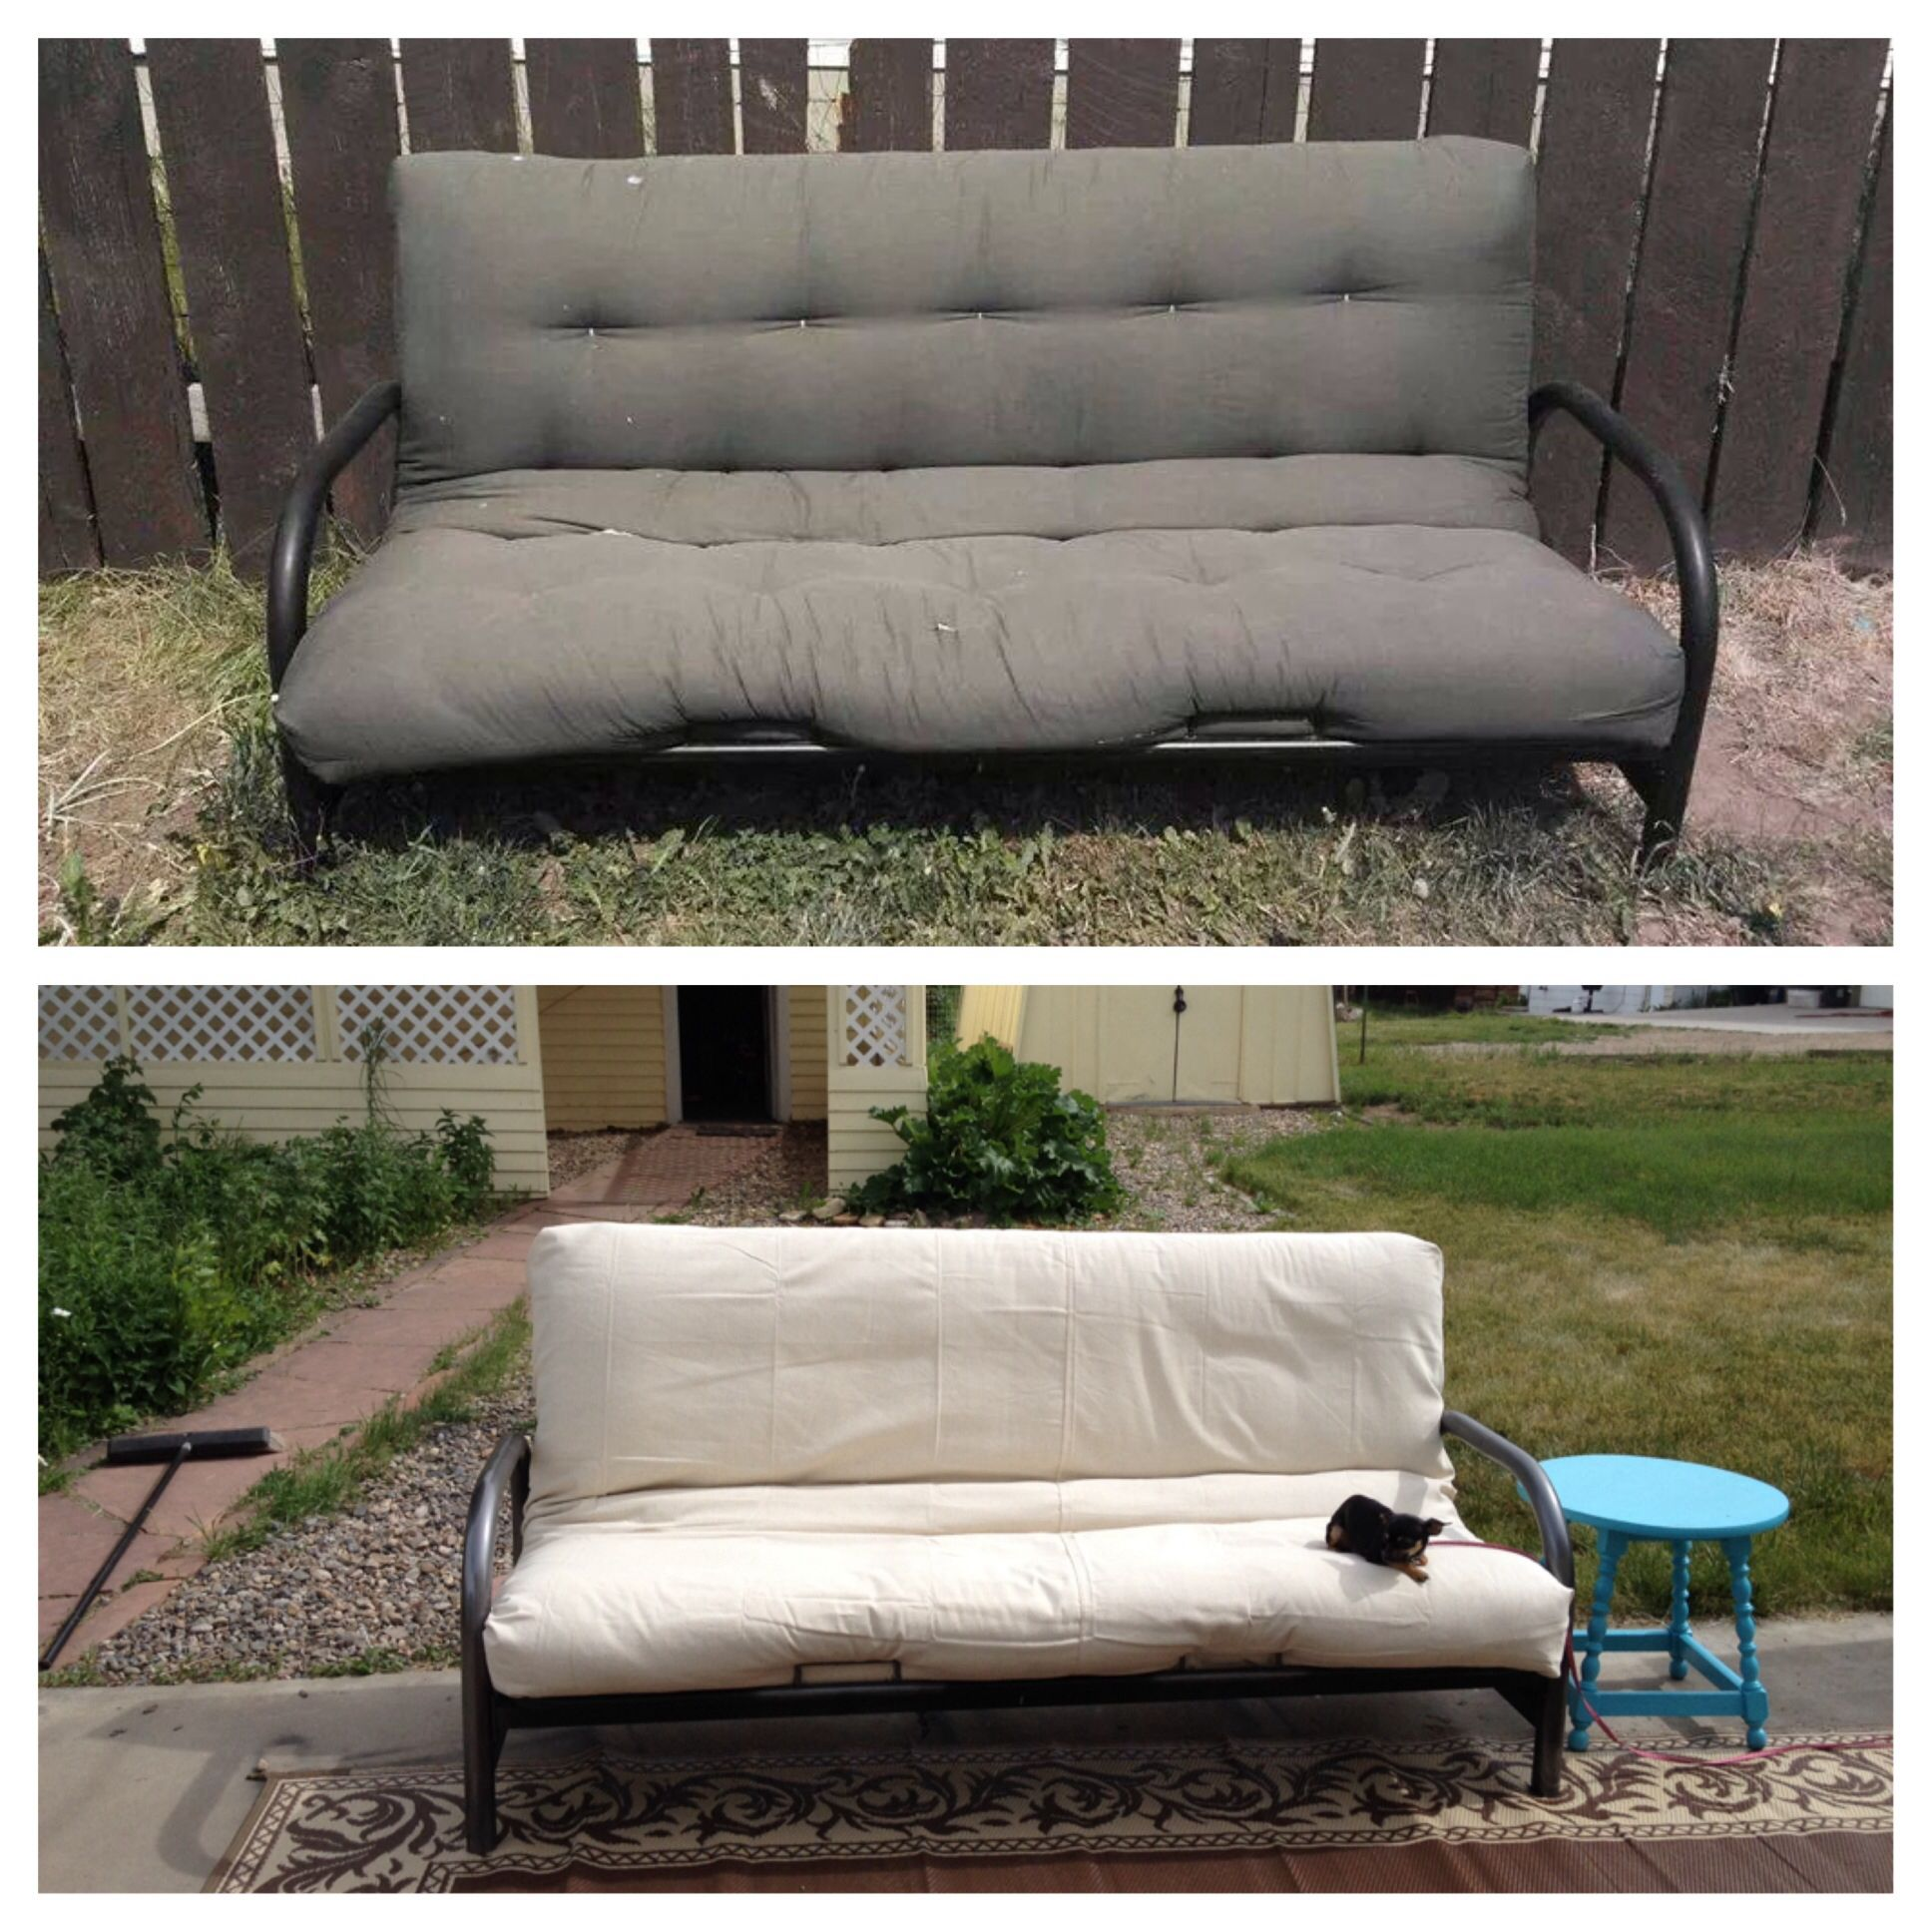 Bought This Old Futon For Patio For 15 And Recovered It